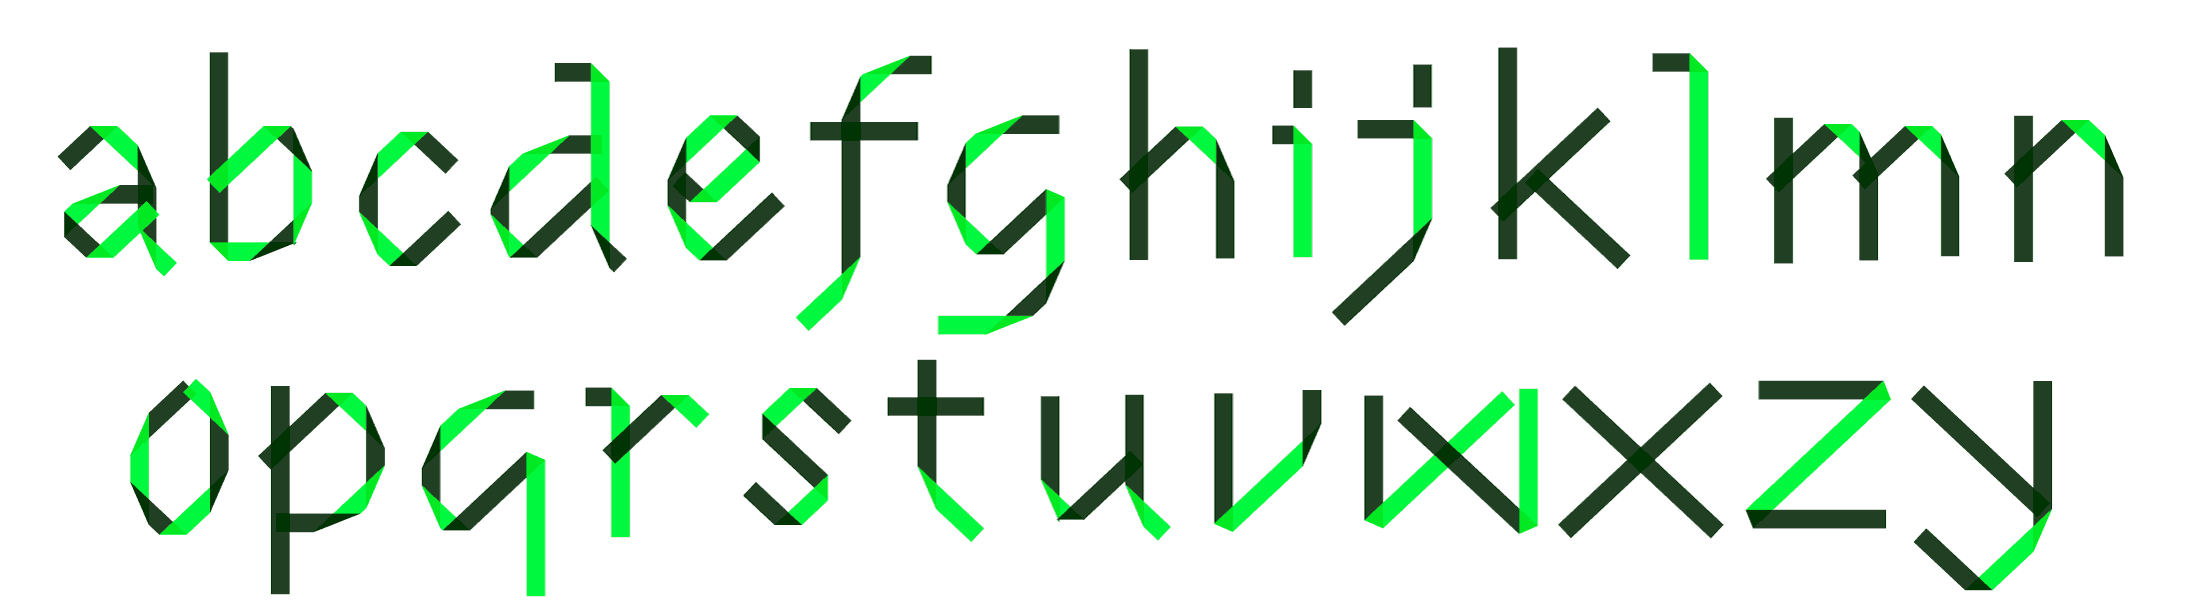 Uppercase set in one of the foldfonts